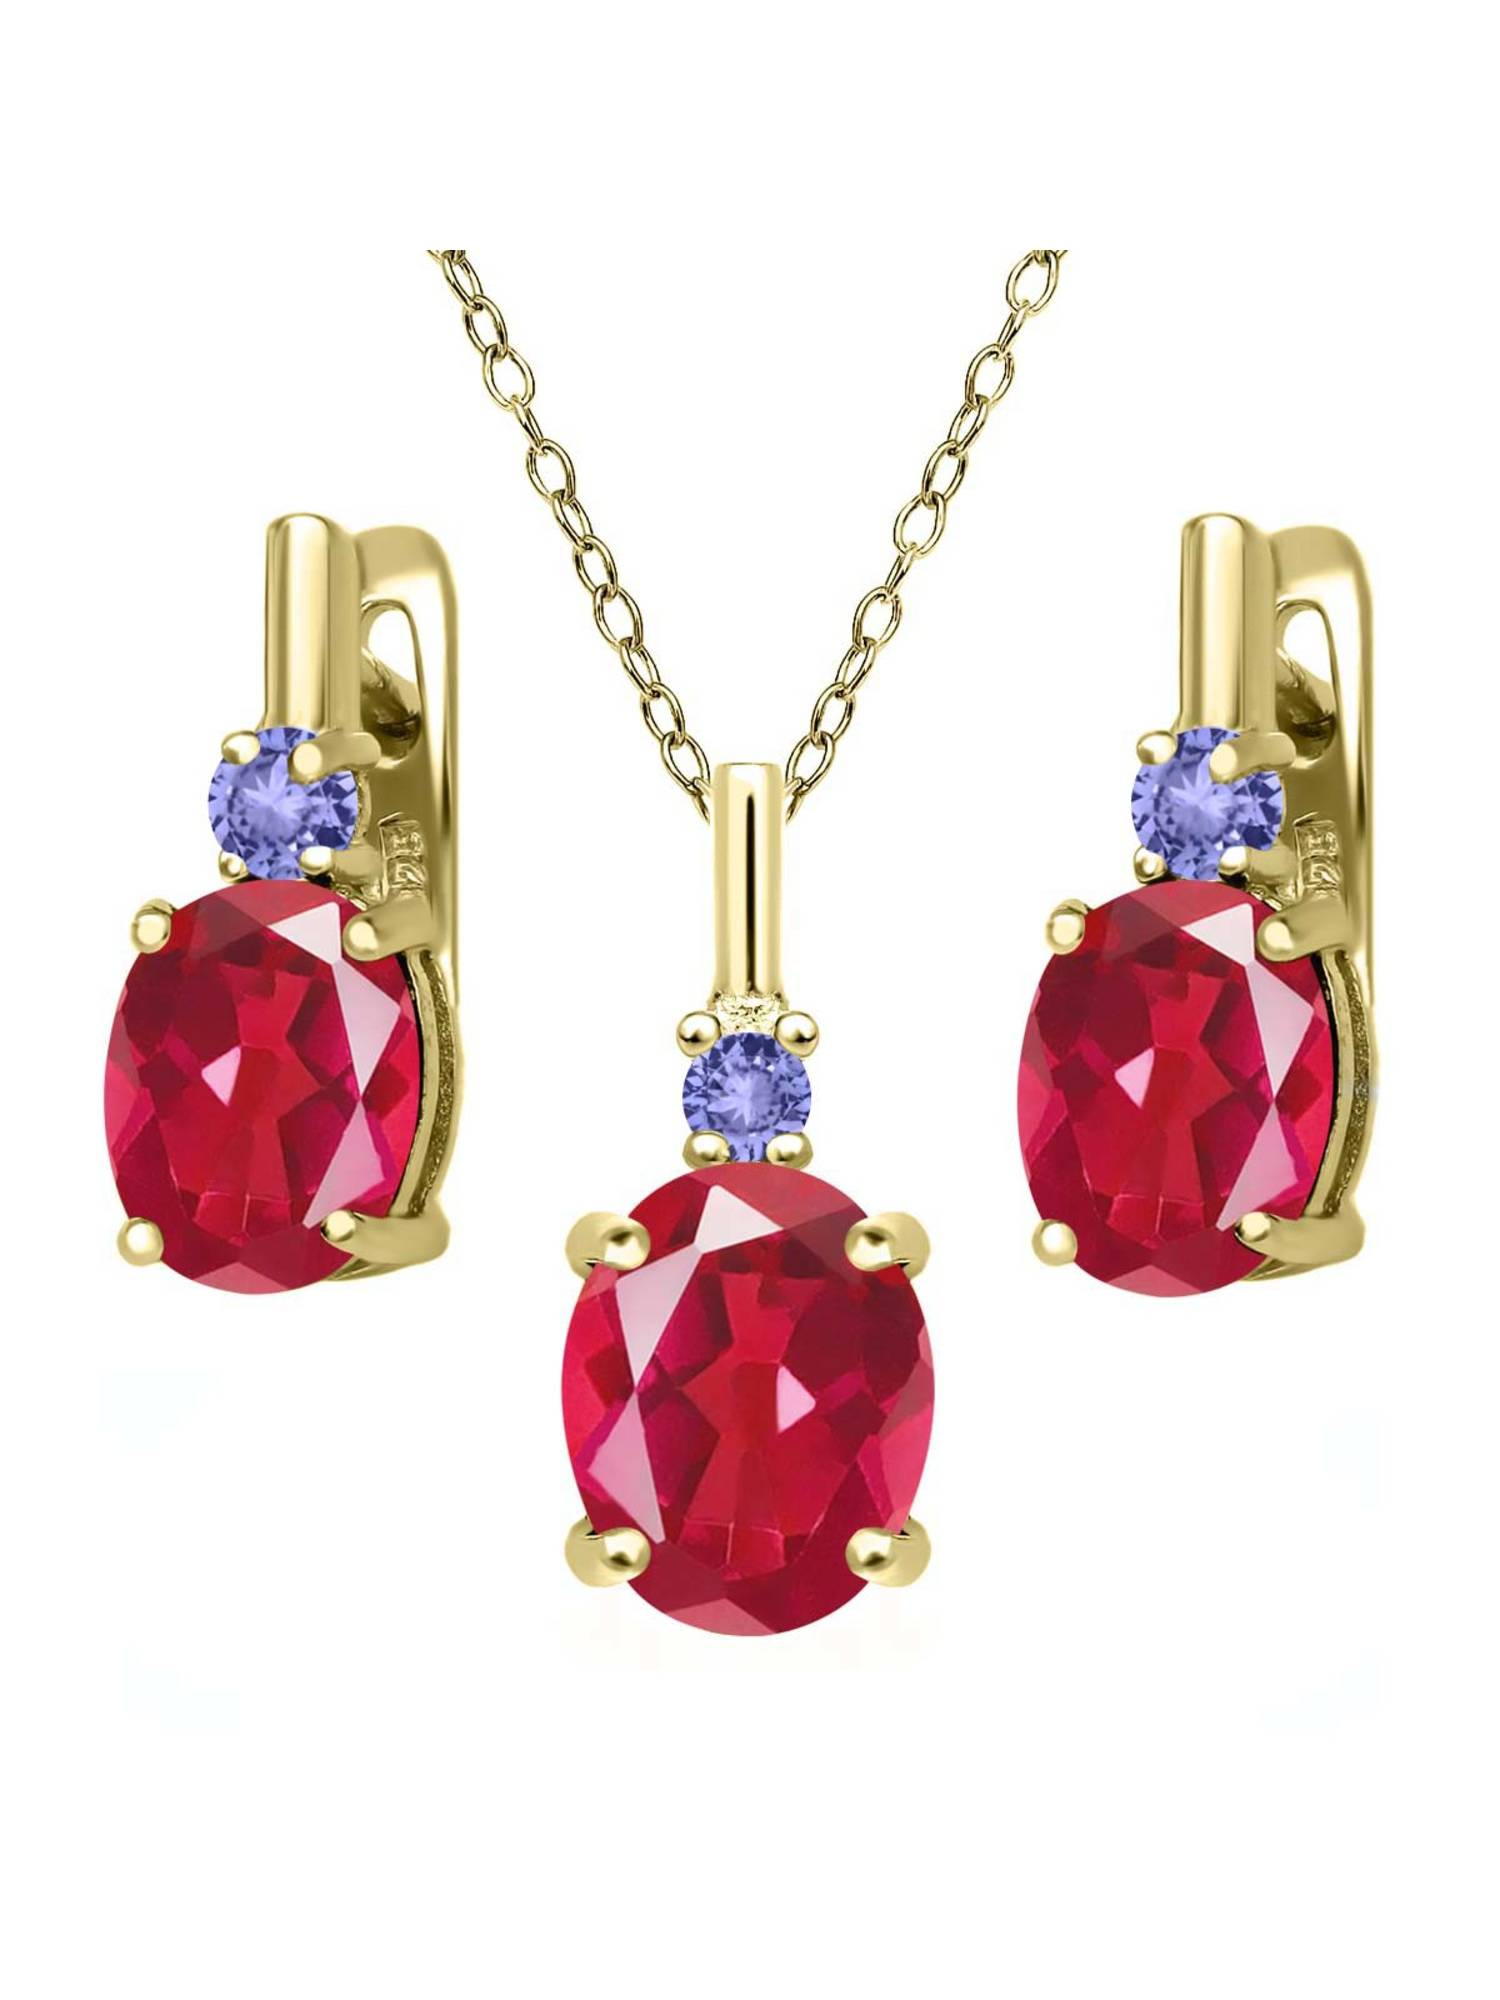 6.98 Ct Last Dance Pink Mystic Quartz Blue Tanzanite 18K Yellow Gold Plated Silver Pendant Earrings Set by